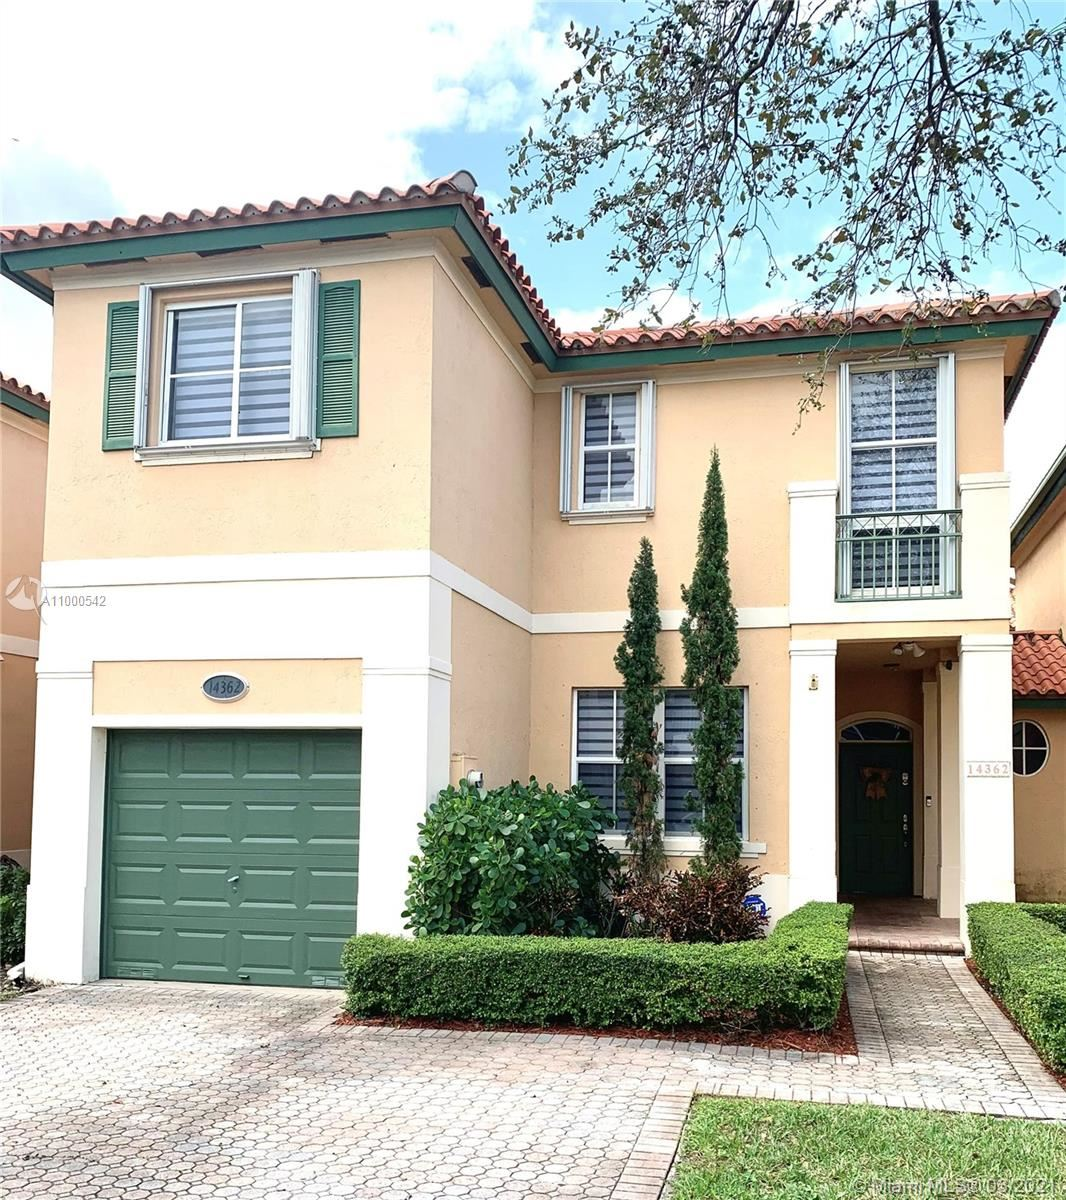 14362 NW 83rd Ave, Miami Lakes, FL 33016 - #: A11000542